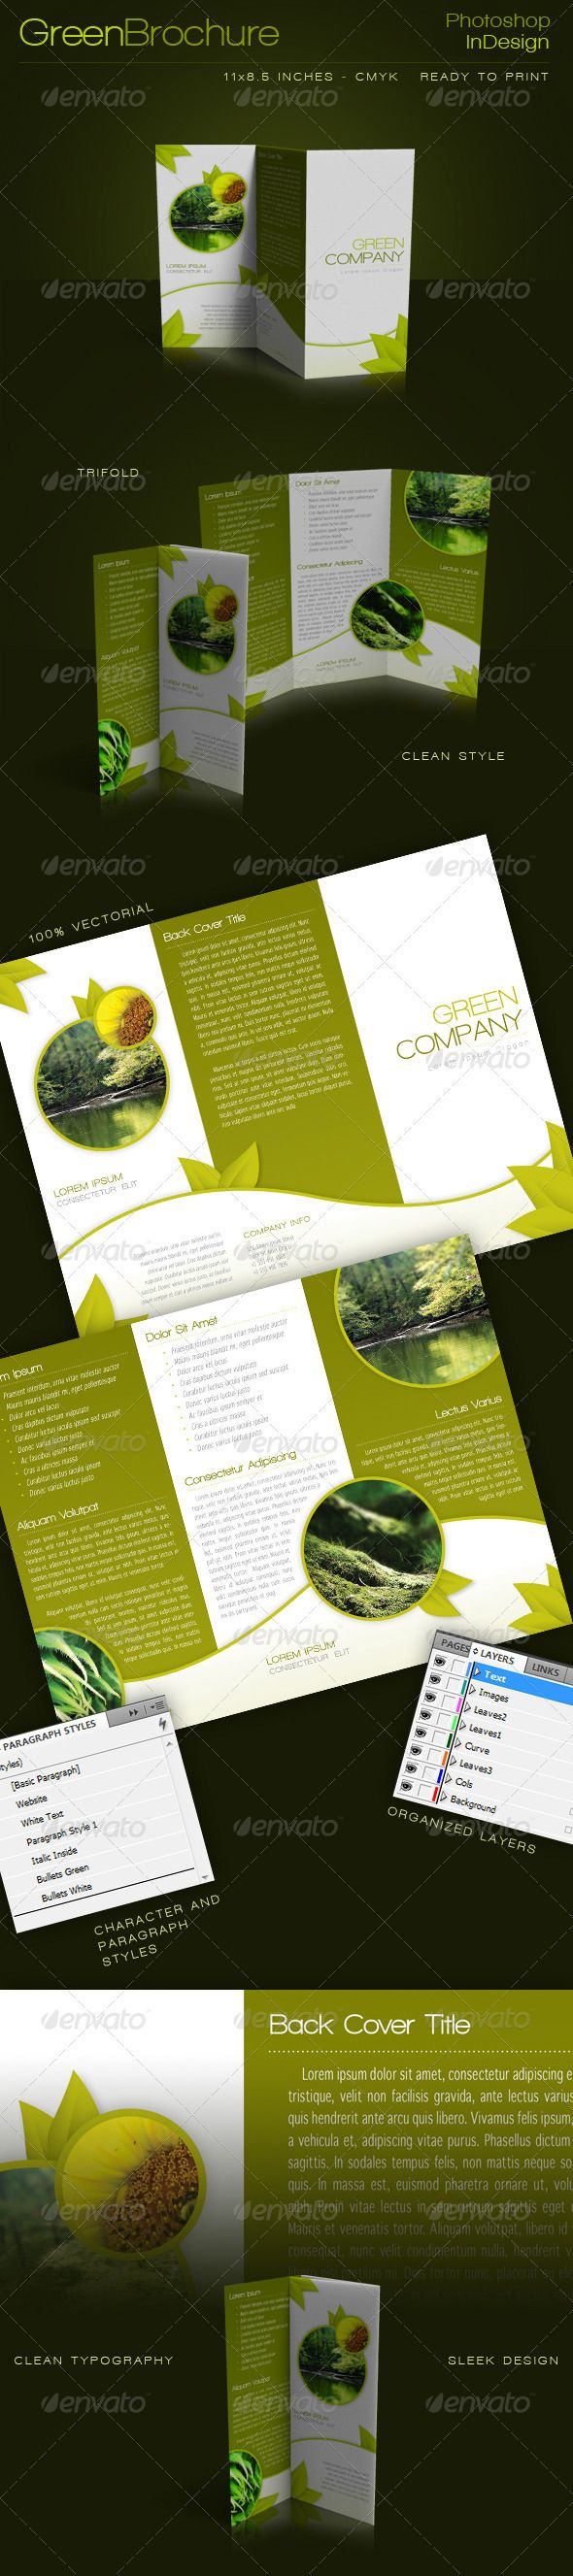 Green Trifold Brochure InDesign Template - GraphicRiver Item for Sale